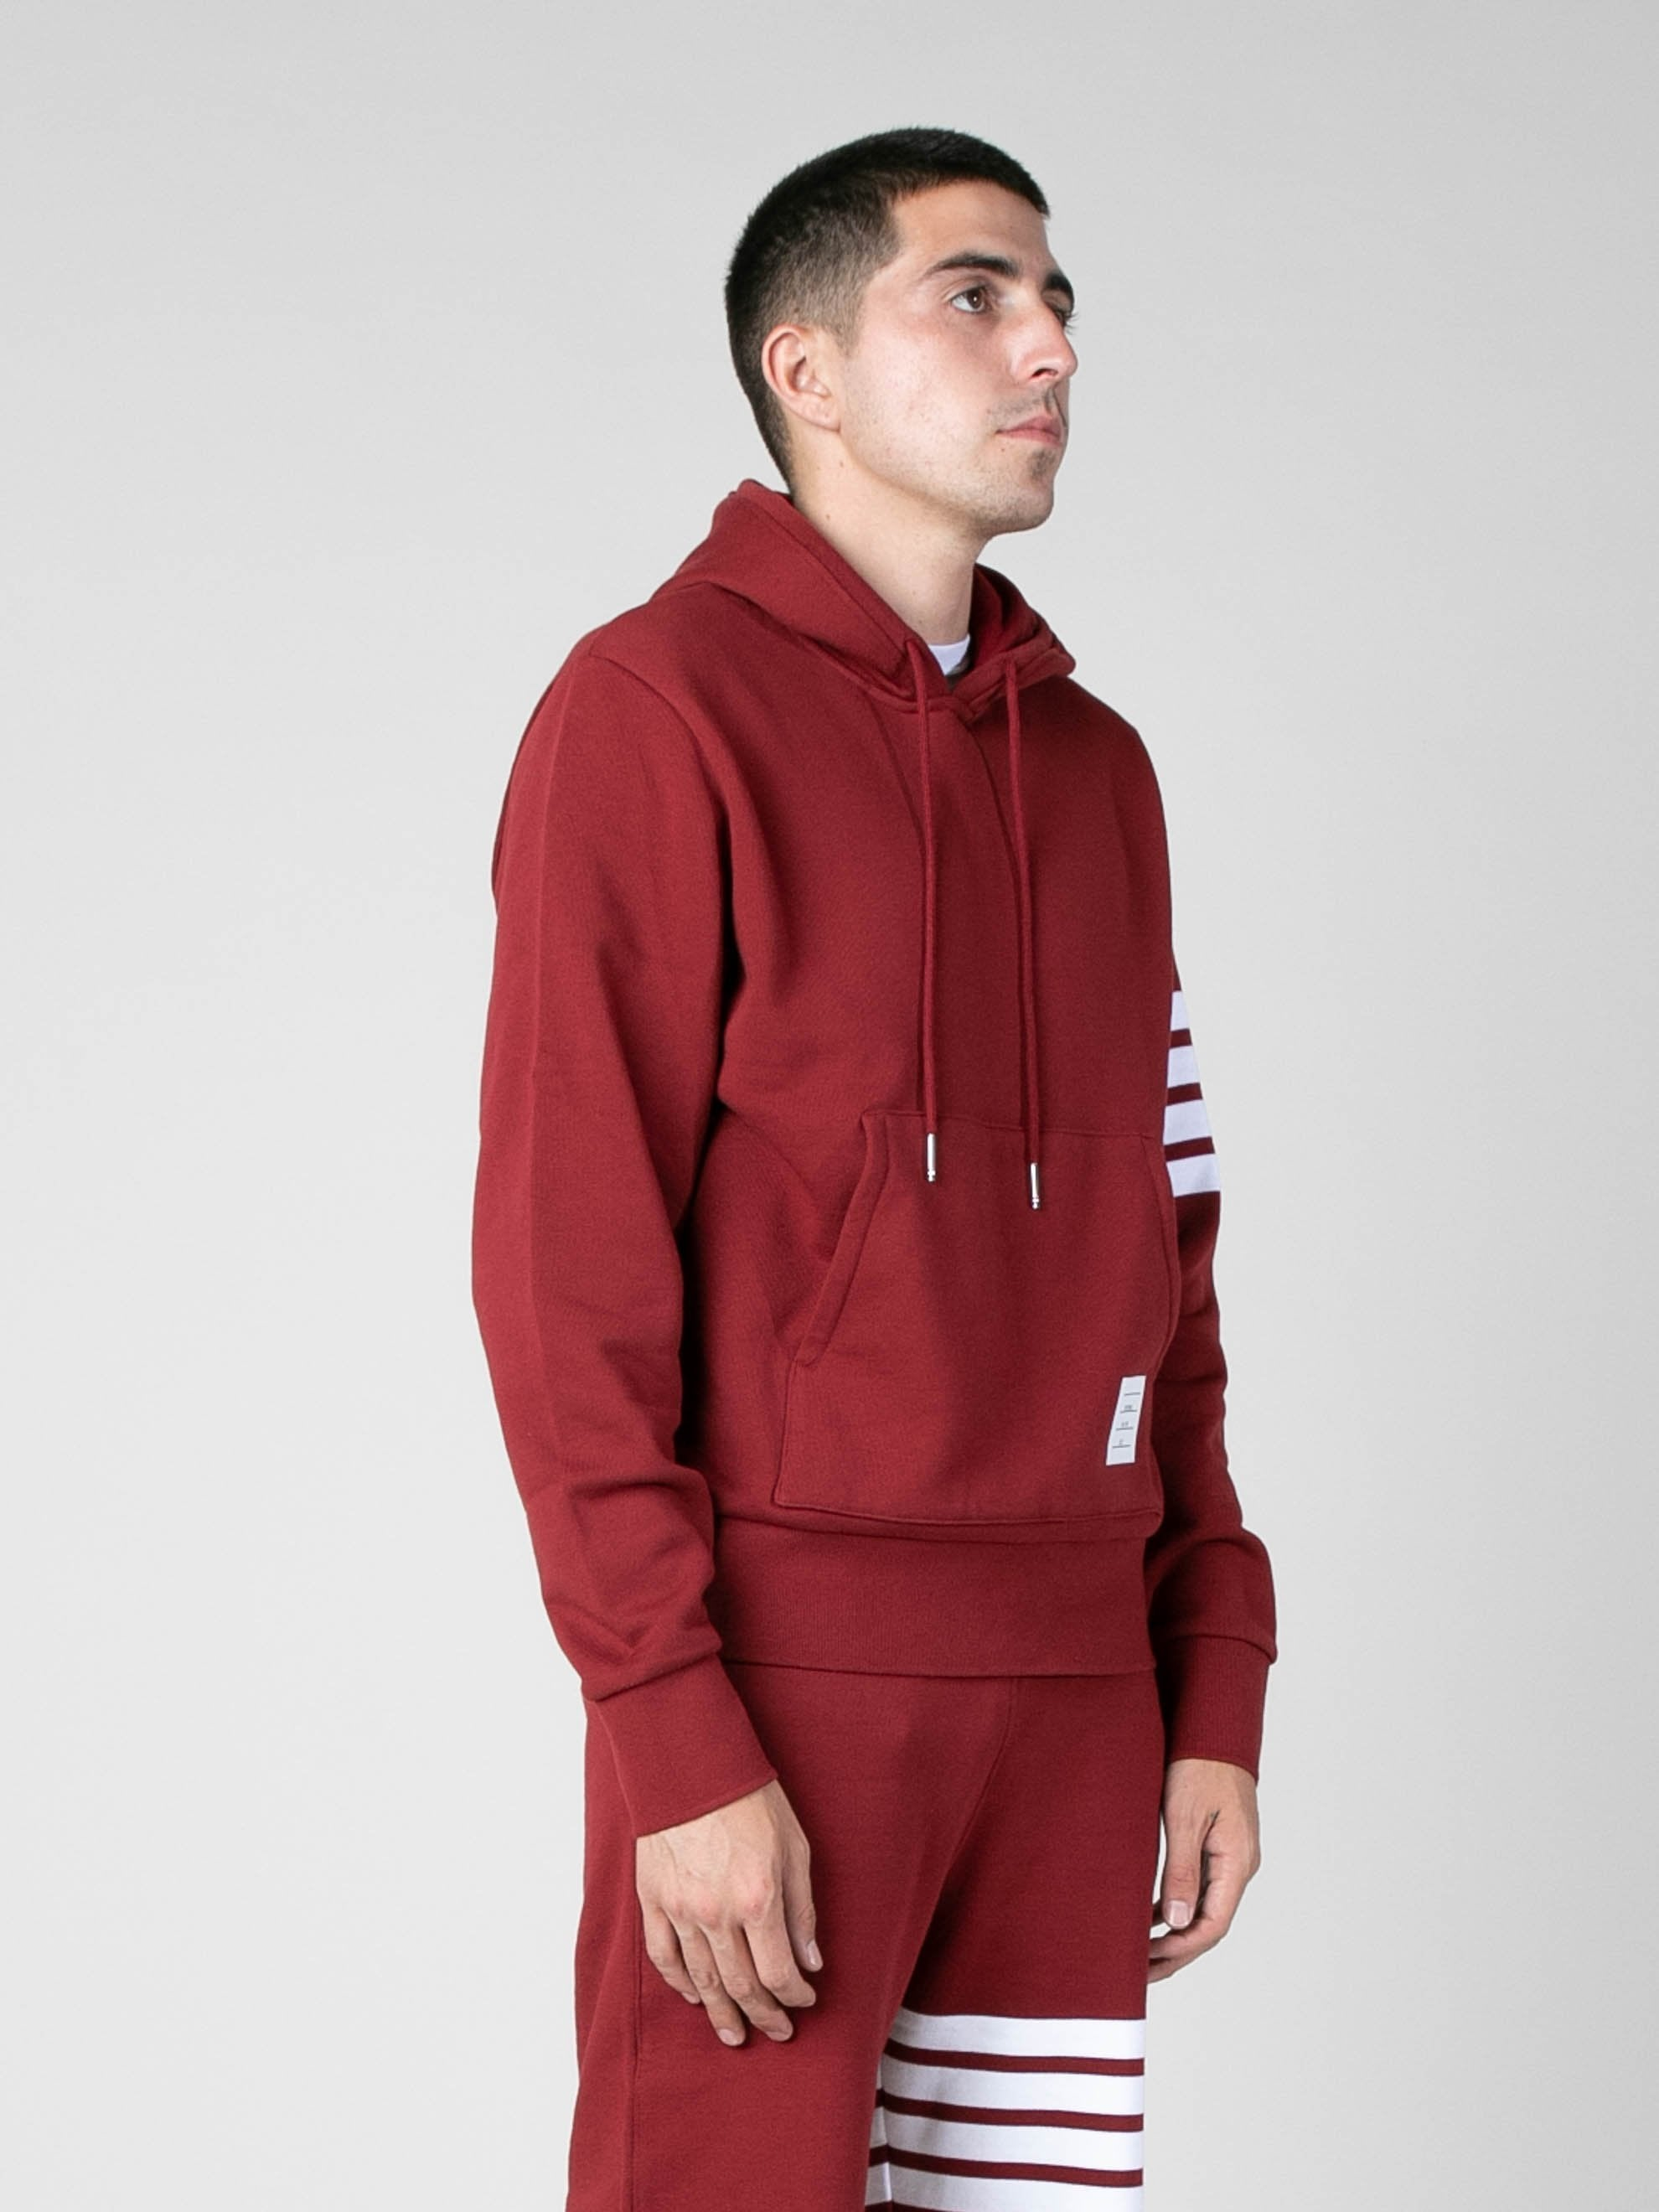 Med Red Hoodie Pullover In Classic Loop Back w/ Engineered 4 Bar 4